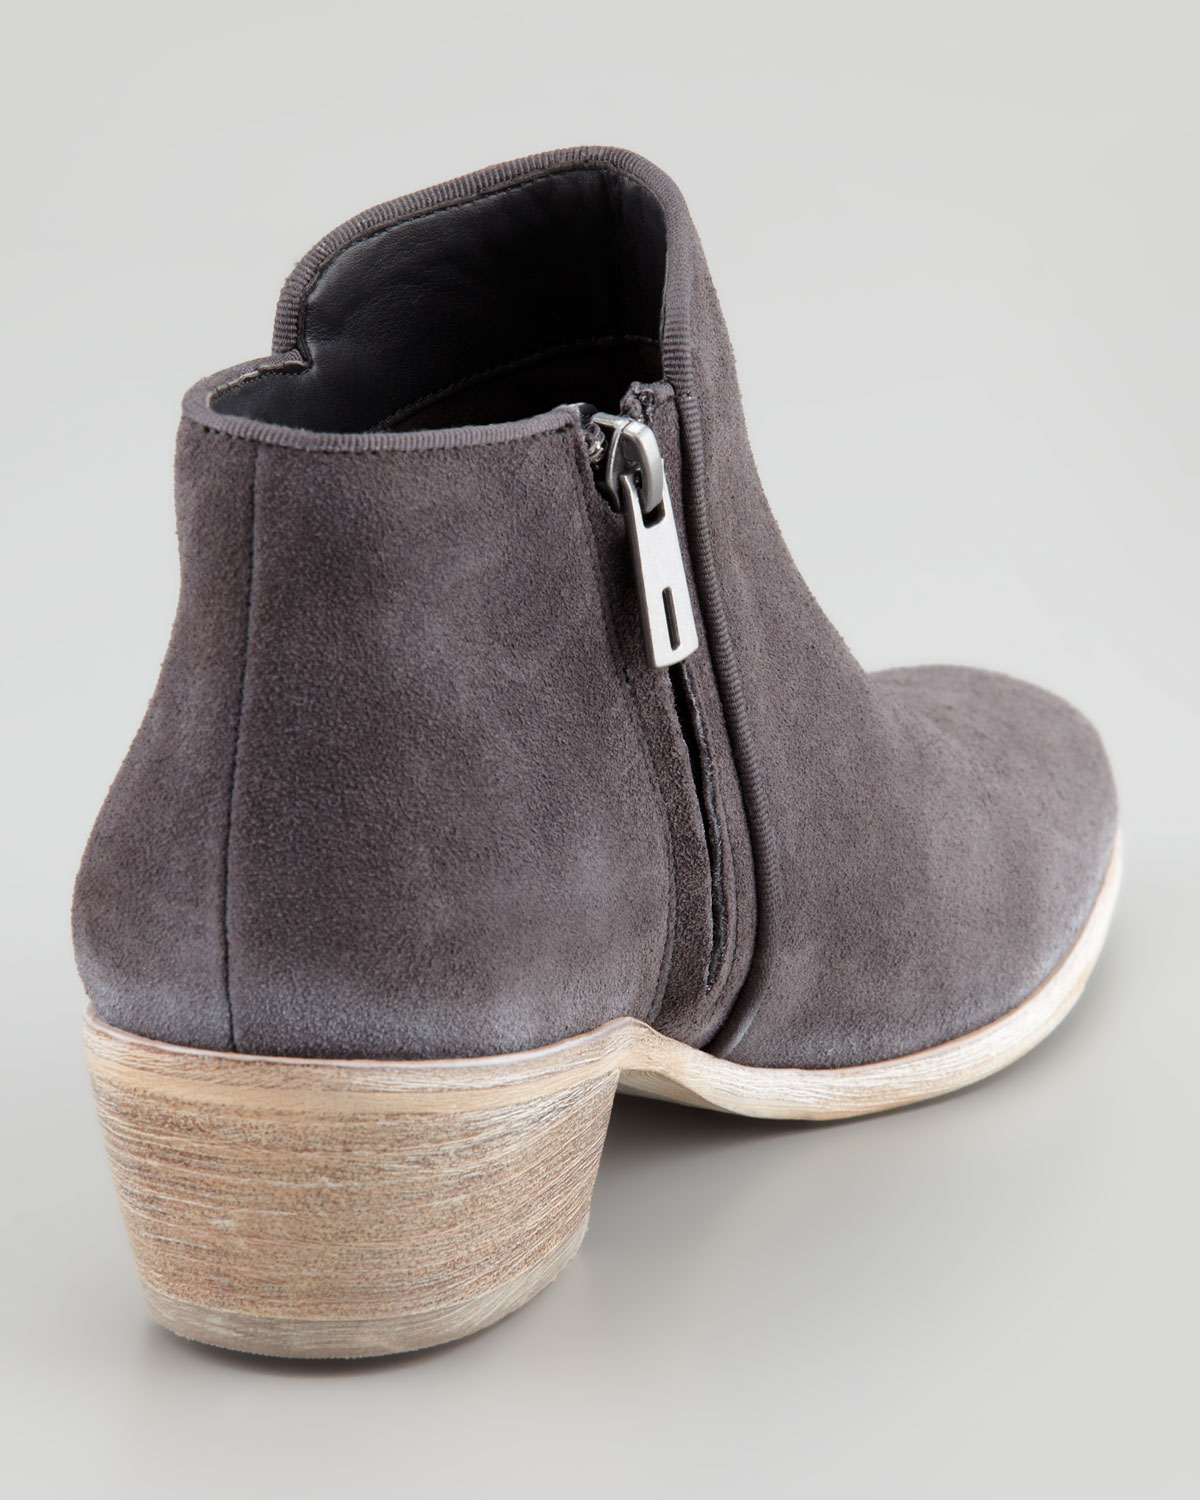 acfaf36edc5d0 Lyst - Sam Edelman Petty Suede Ankle Boot in Gray